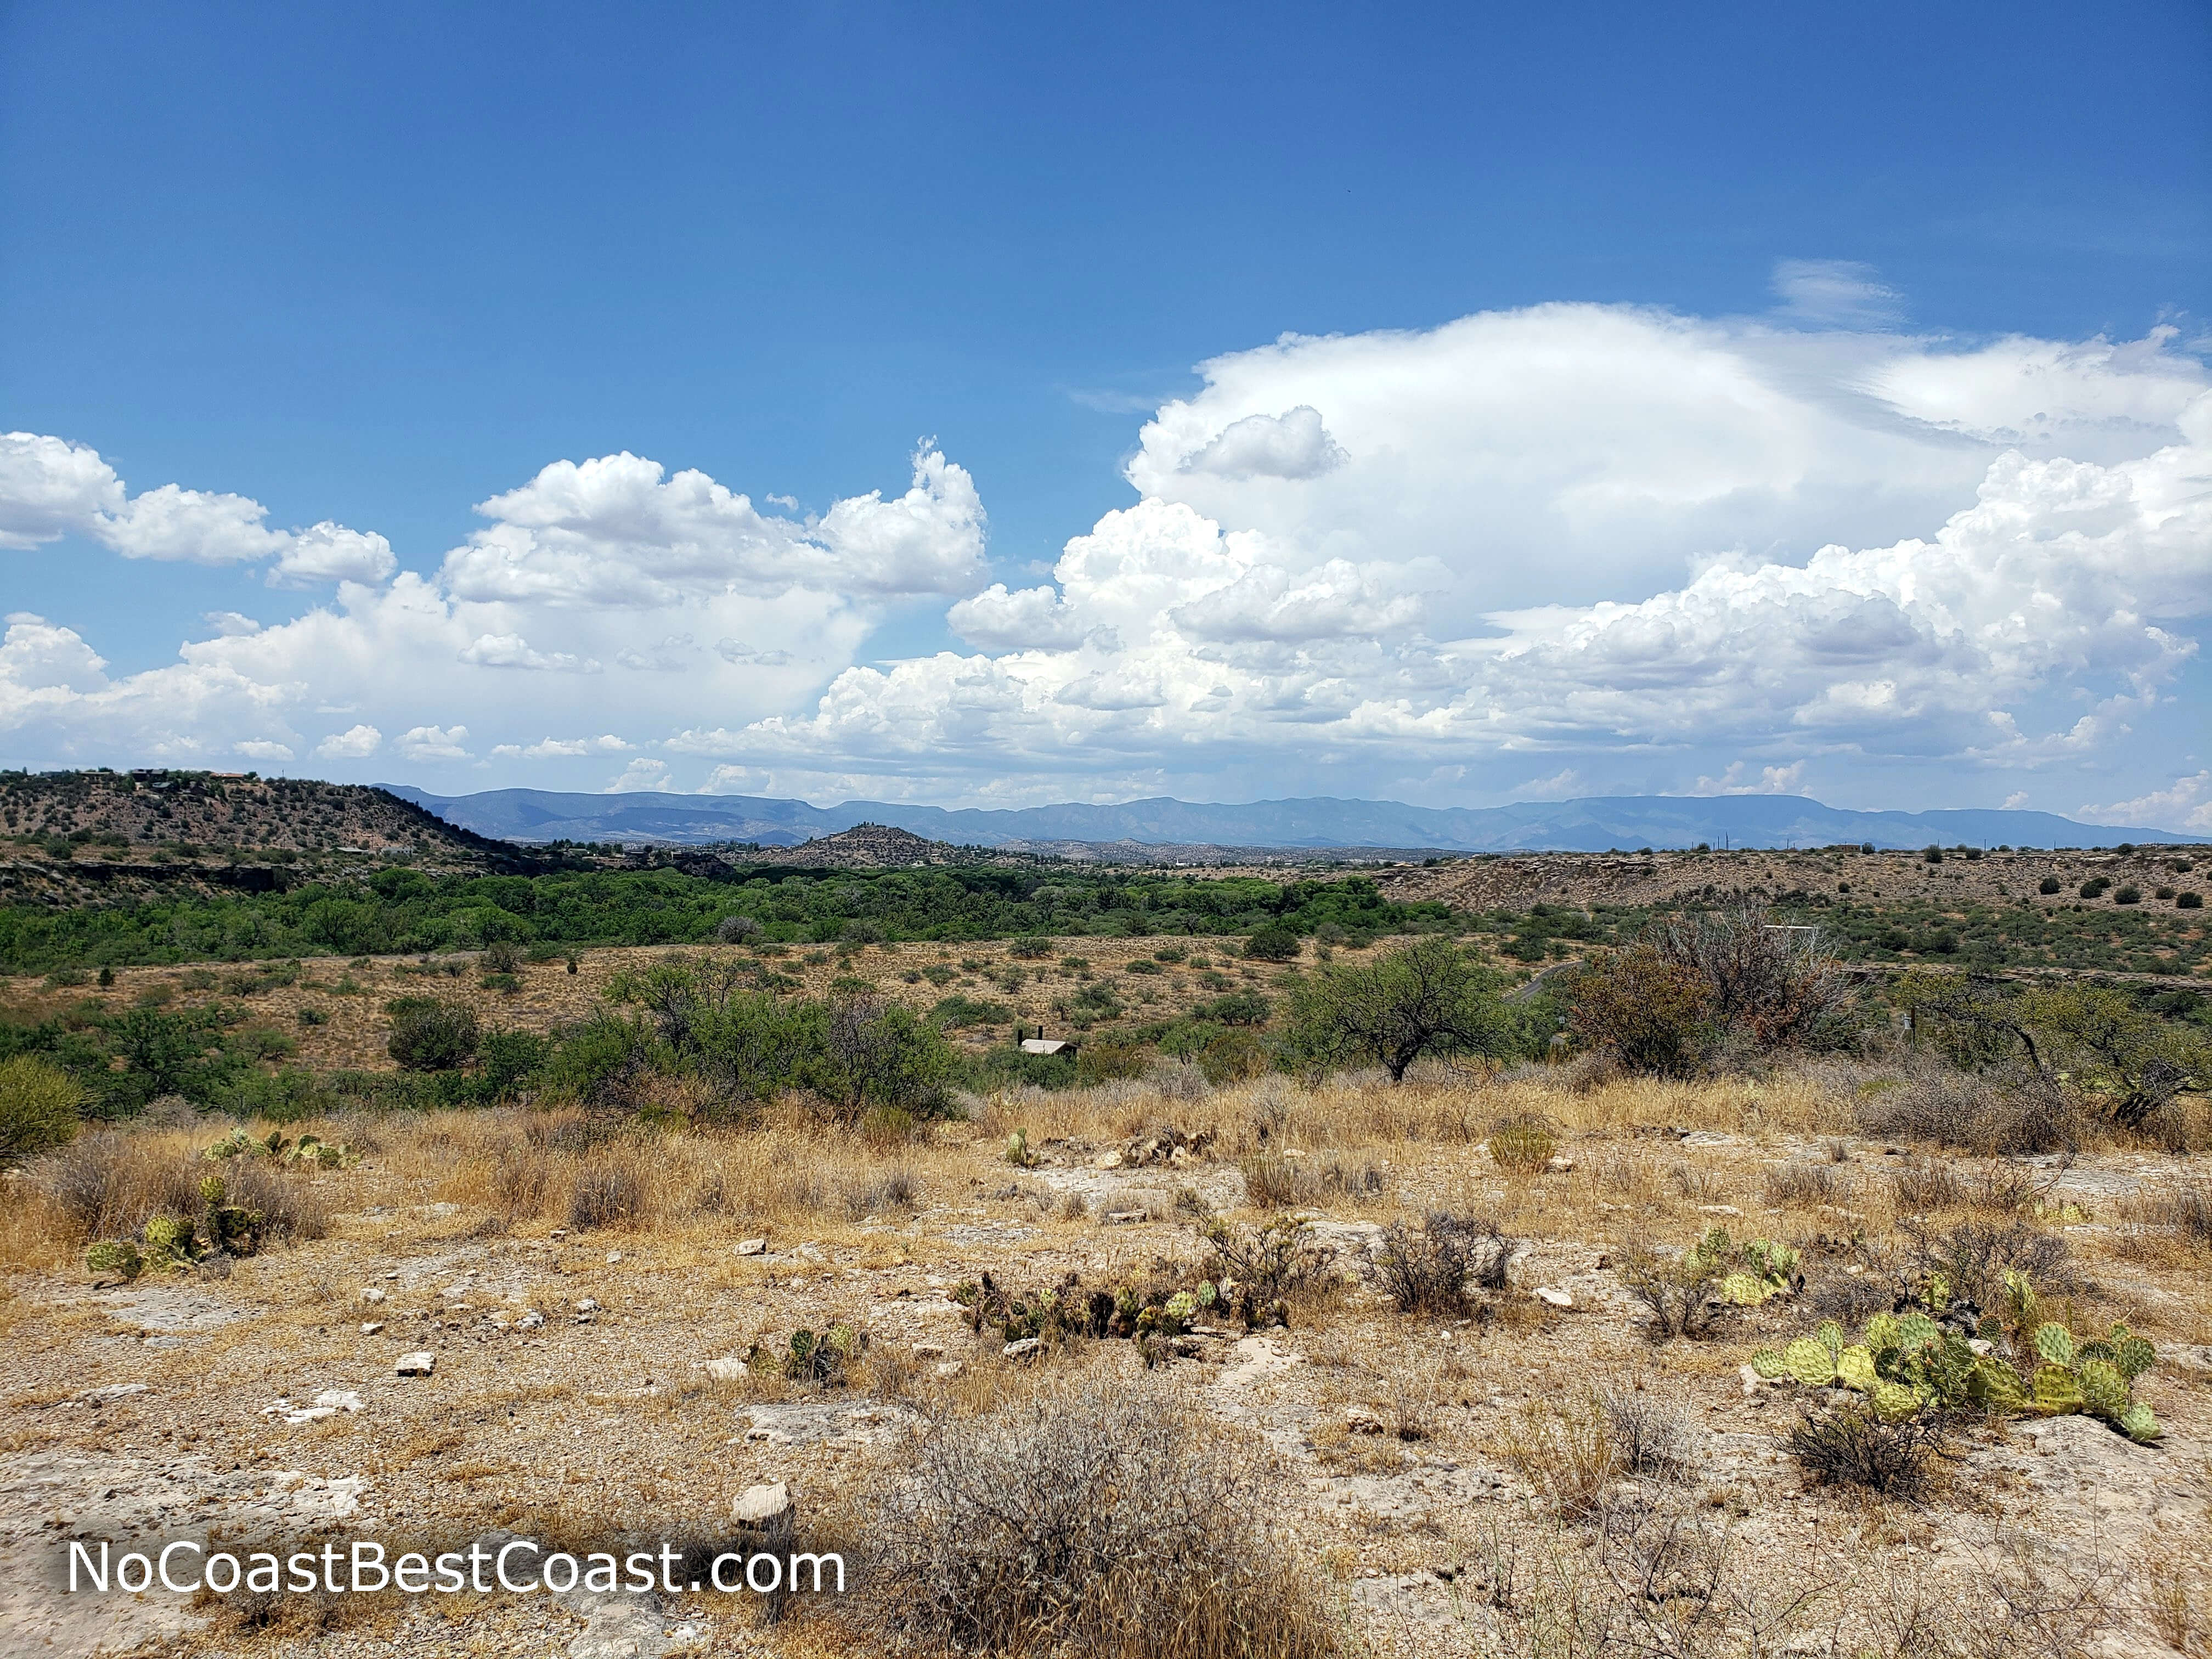 Puffy clouds above the distant desert mountains